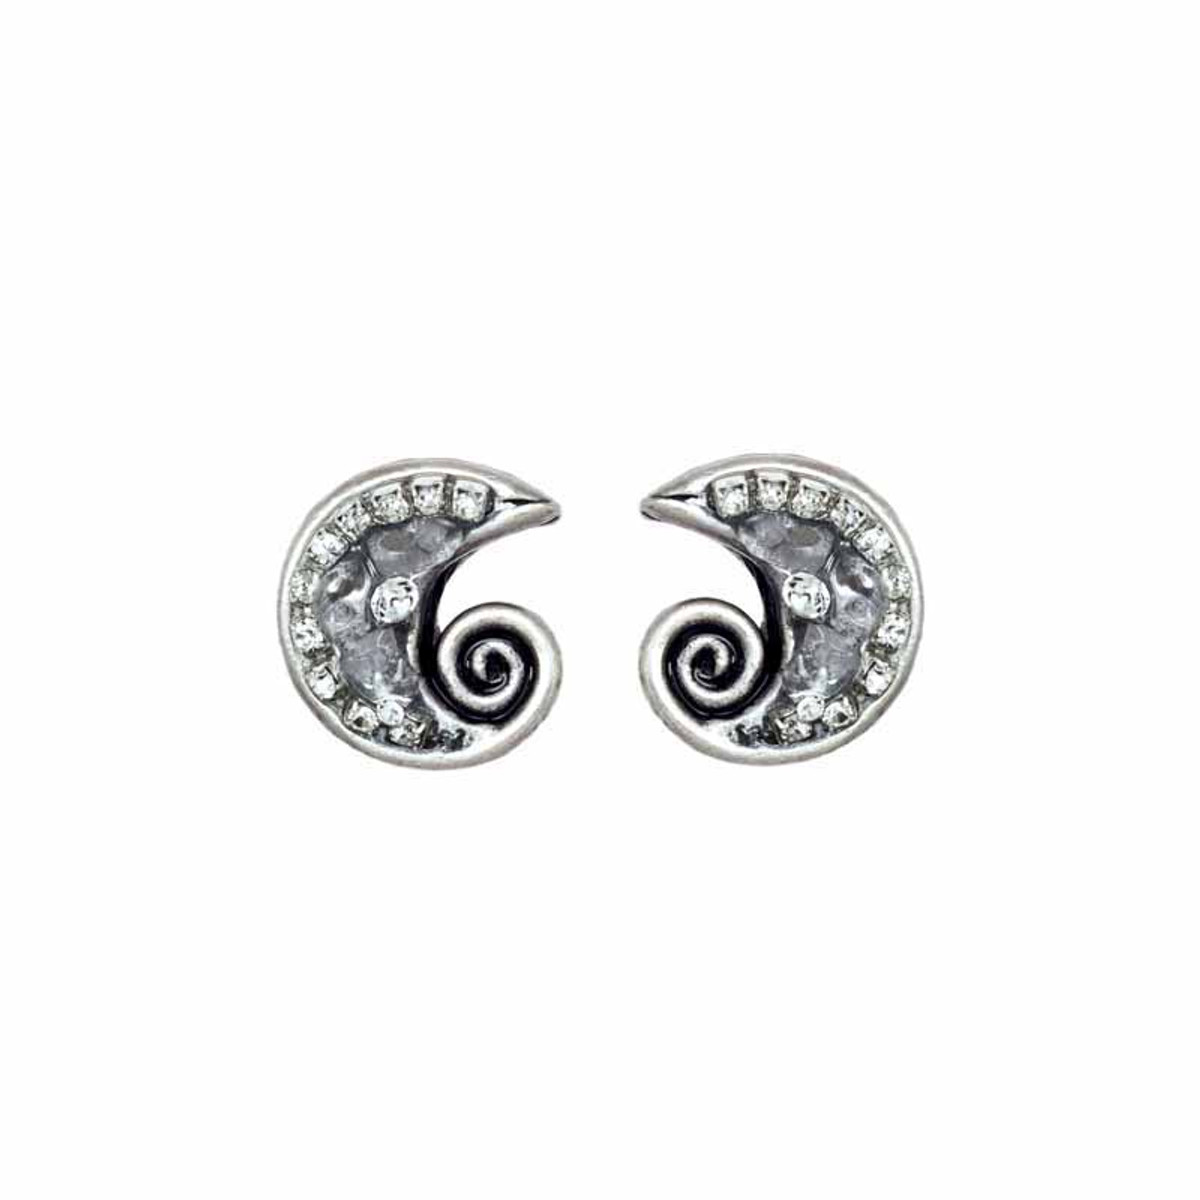 Michal Golan Icy Dreams Swirl Earrings